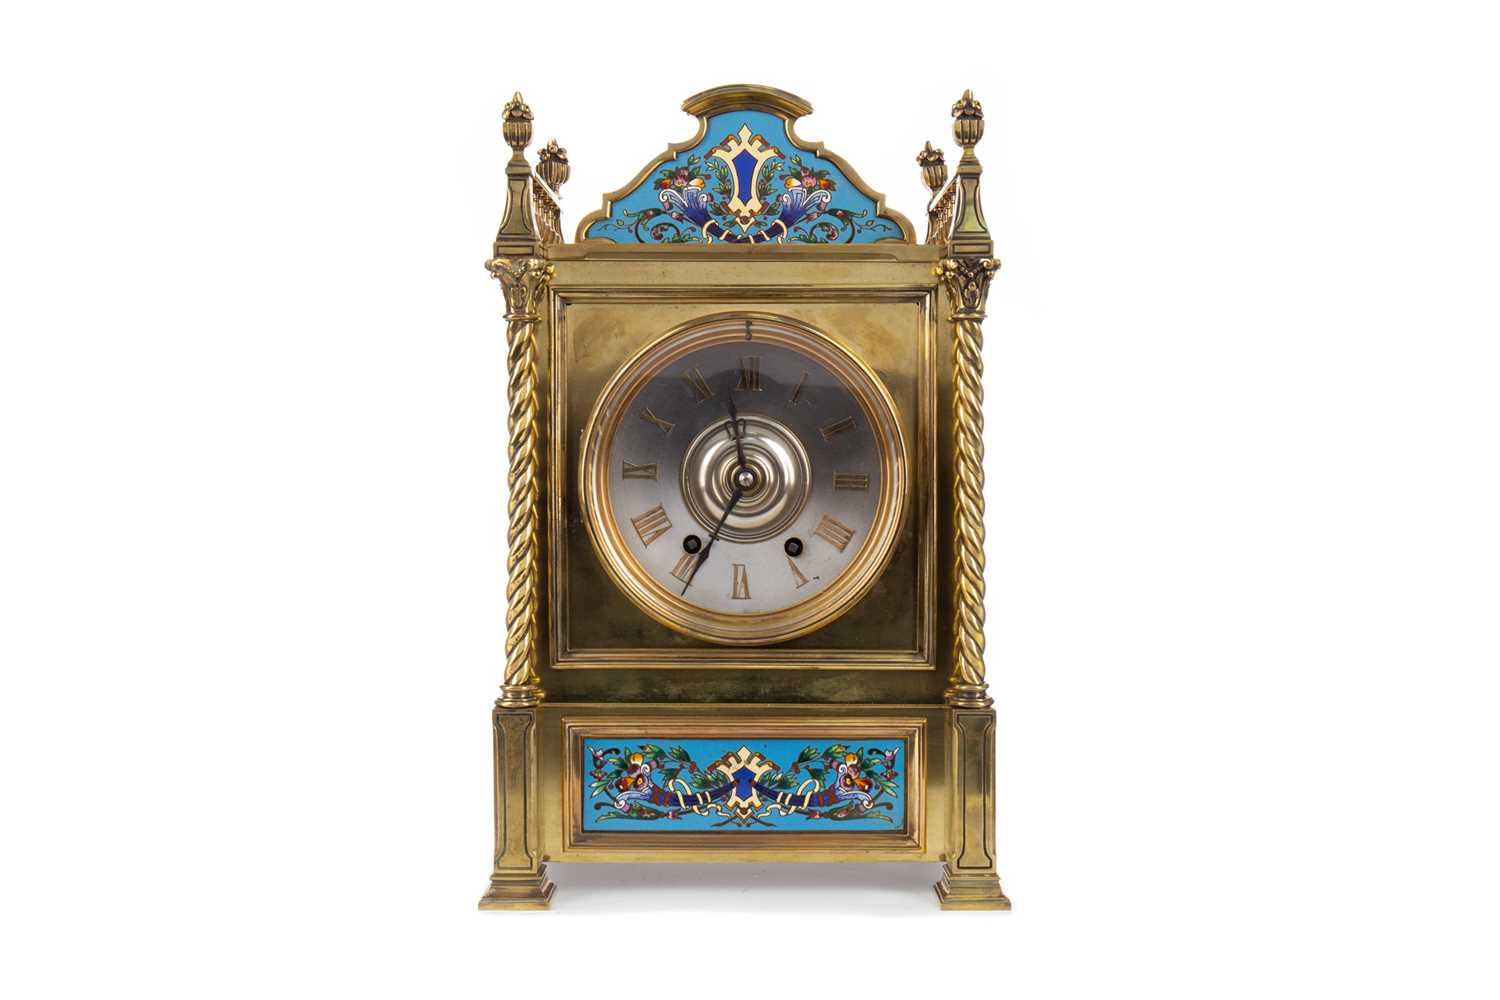 Lot A LATE 19TH CENTURY BRASS AND CLOISONNÉ MANTEL CLOCK